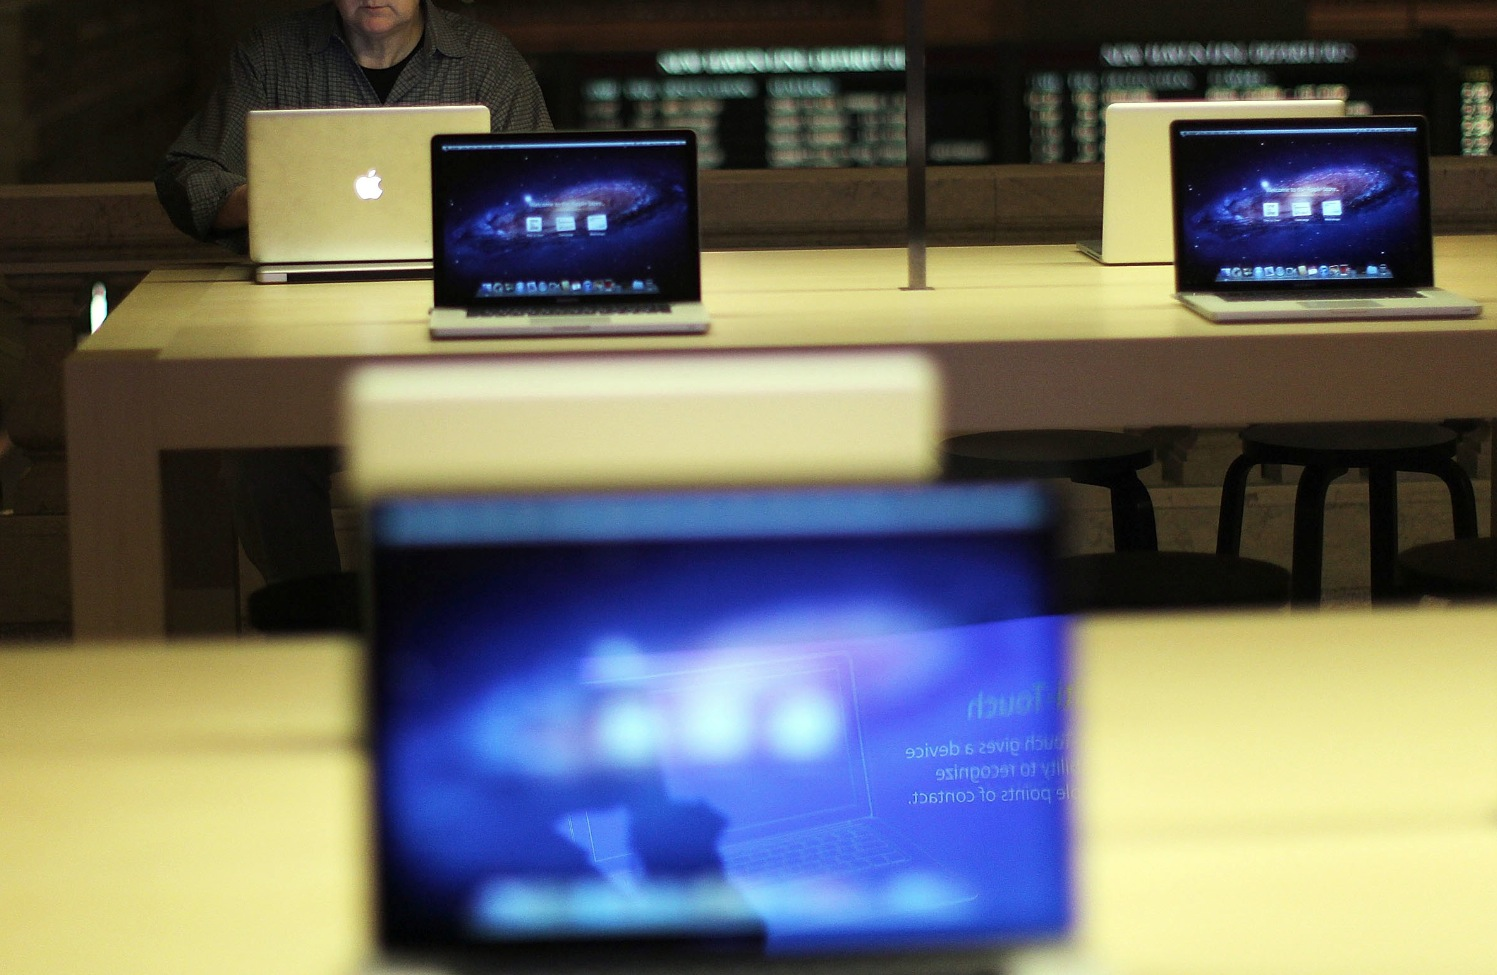 Apple sells 4.9M Macs in Q4 2012, up 1% year-over-year, MacBooks now 80% of all Mac sales